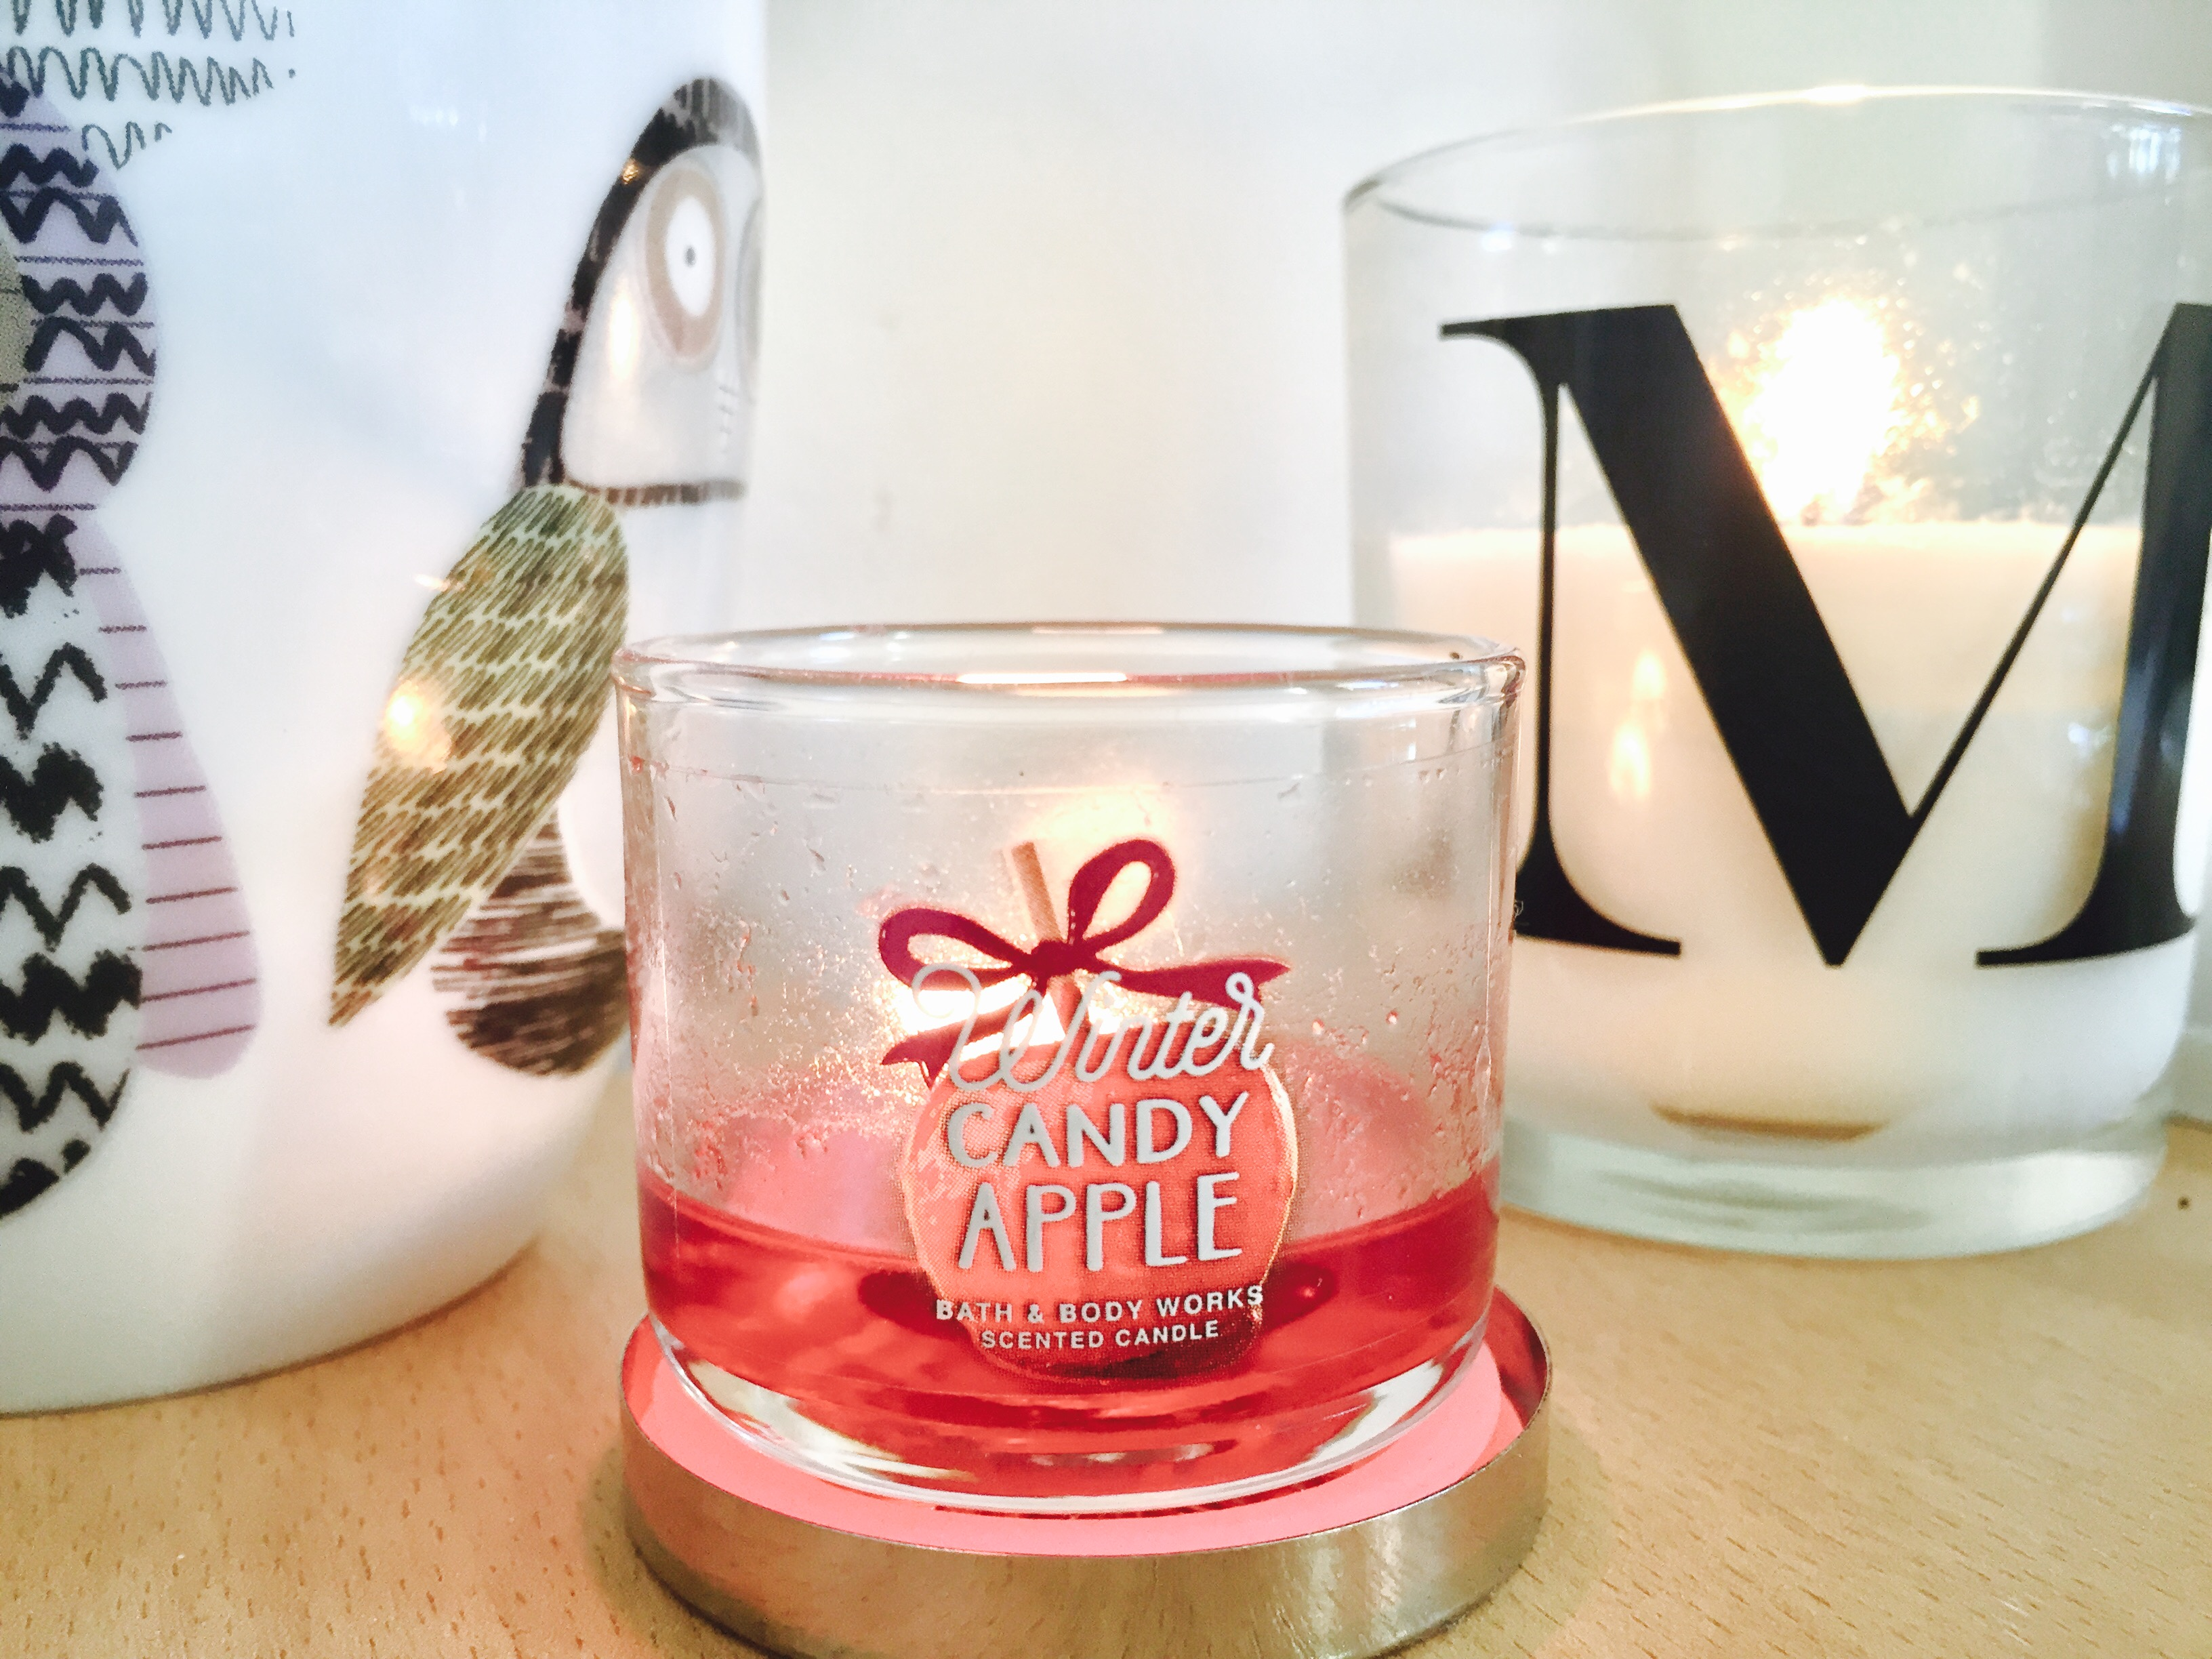 winter candy apple bath and body works candle lazy day